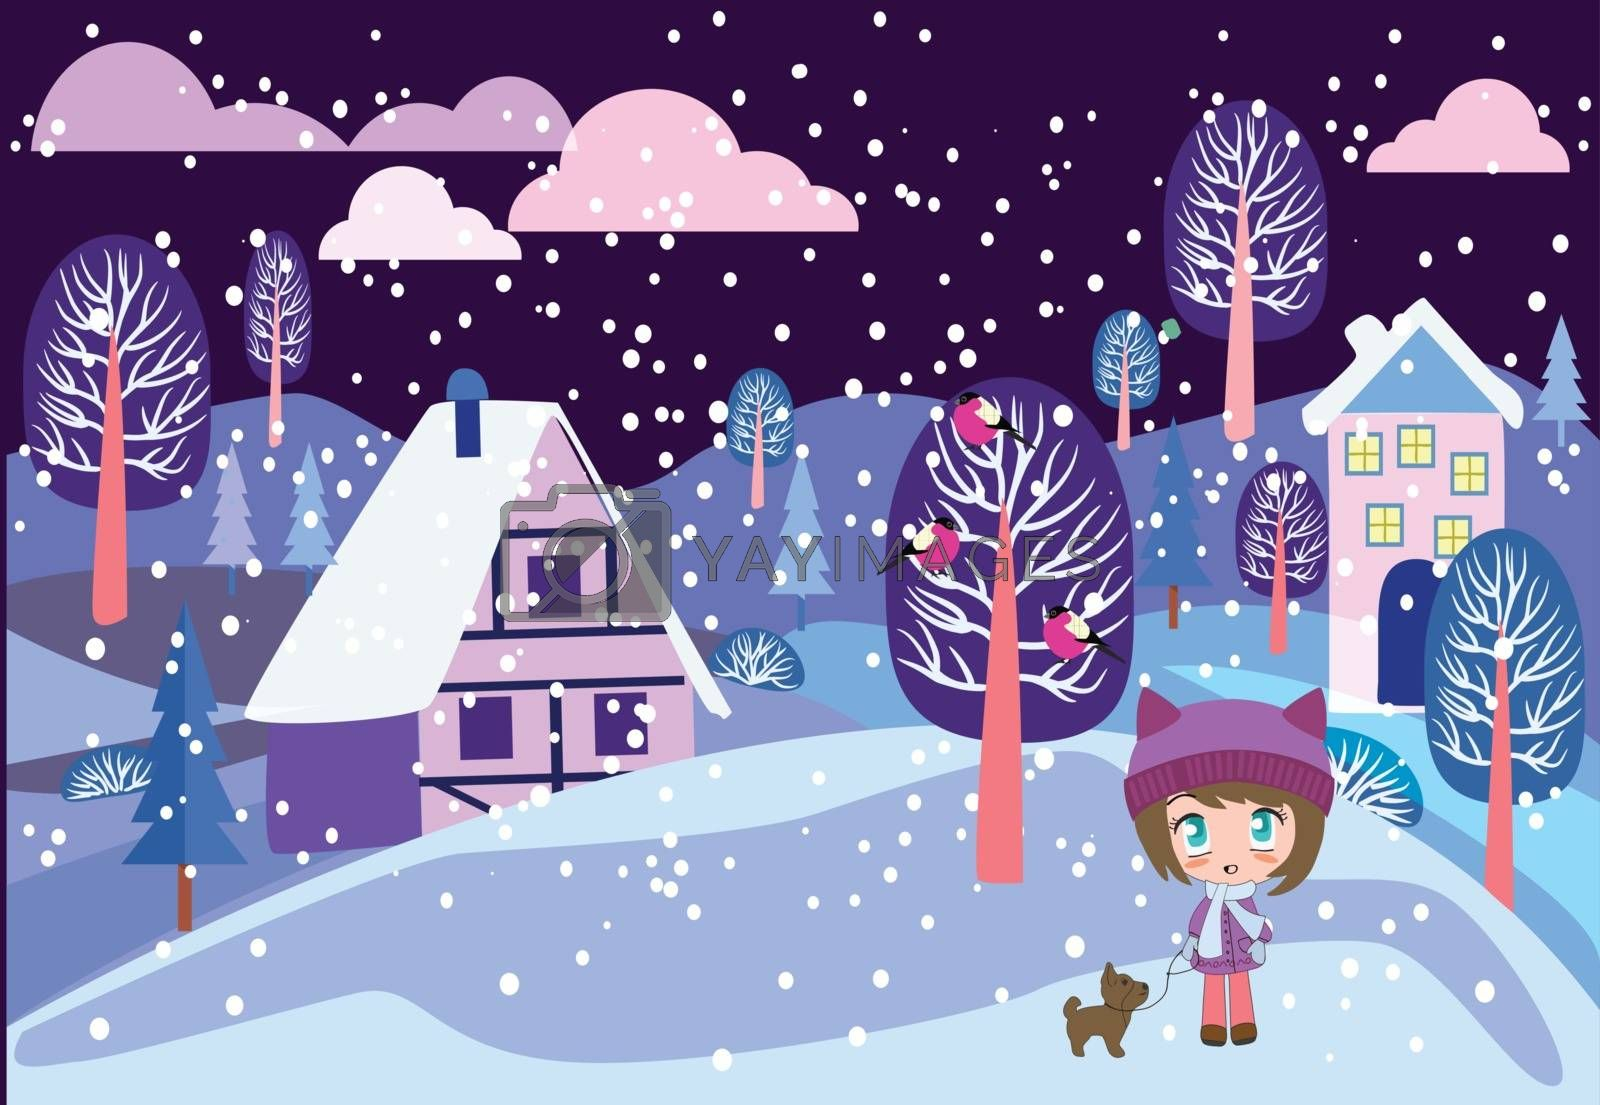 Cute girl with small dog on Winter landscape. Beautiful cartoon chibi girl. Merry Christmas greeting card design with Winter country night landscape.